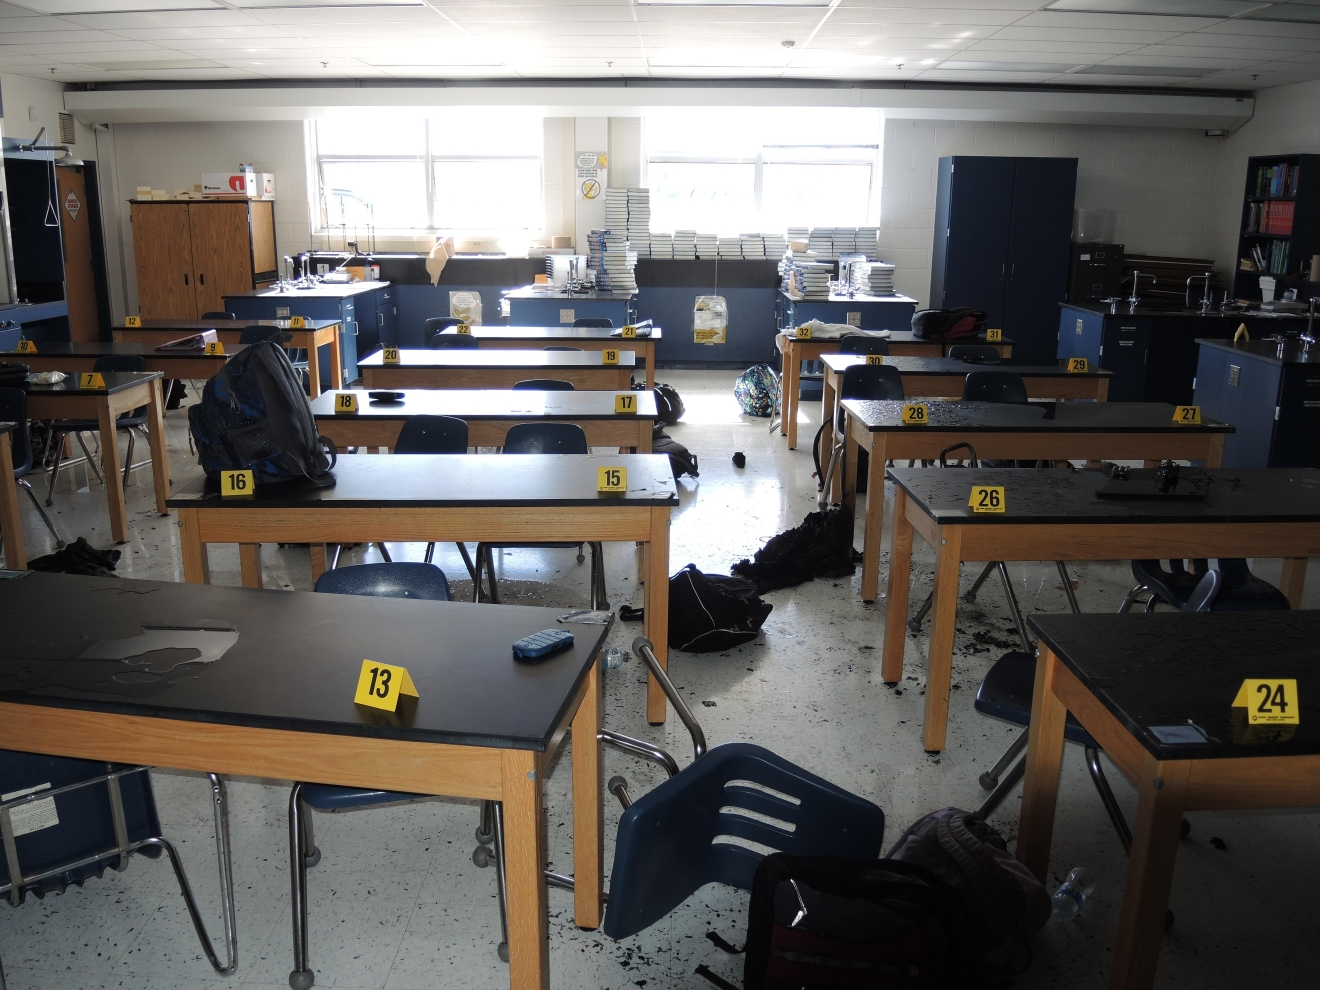 Picture of the classroom after the experiment. (Photo: Virginia Occupational Safety and Health)